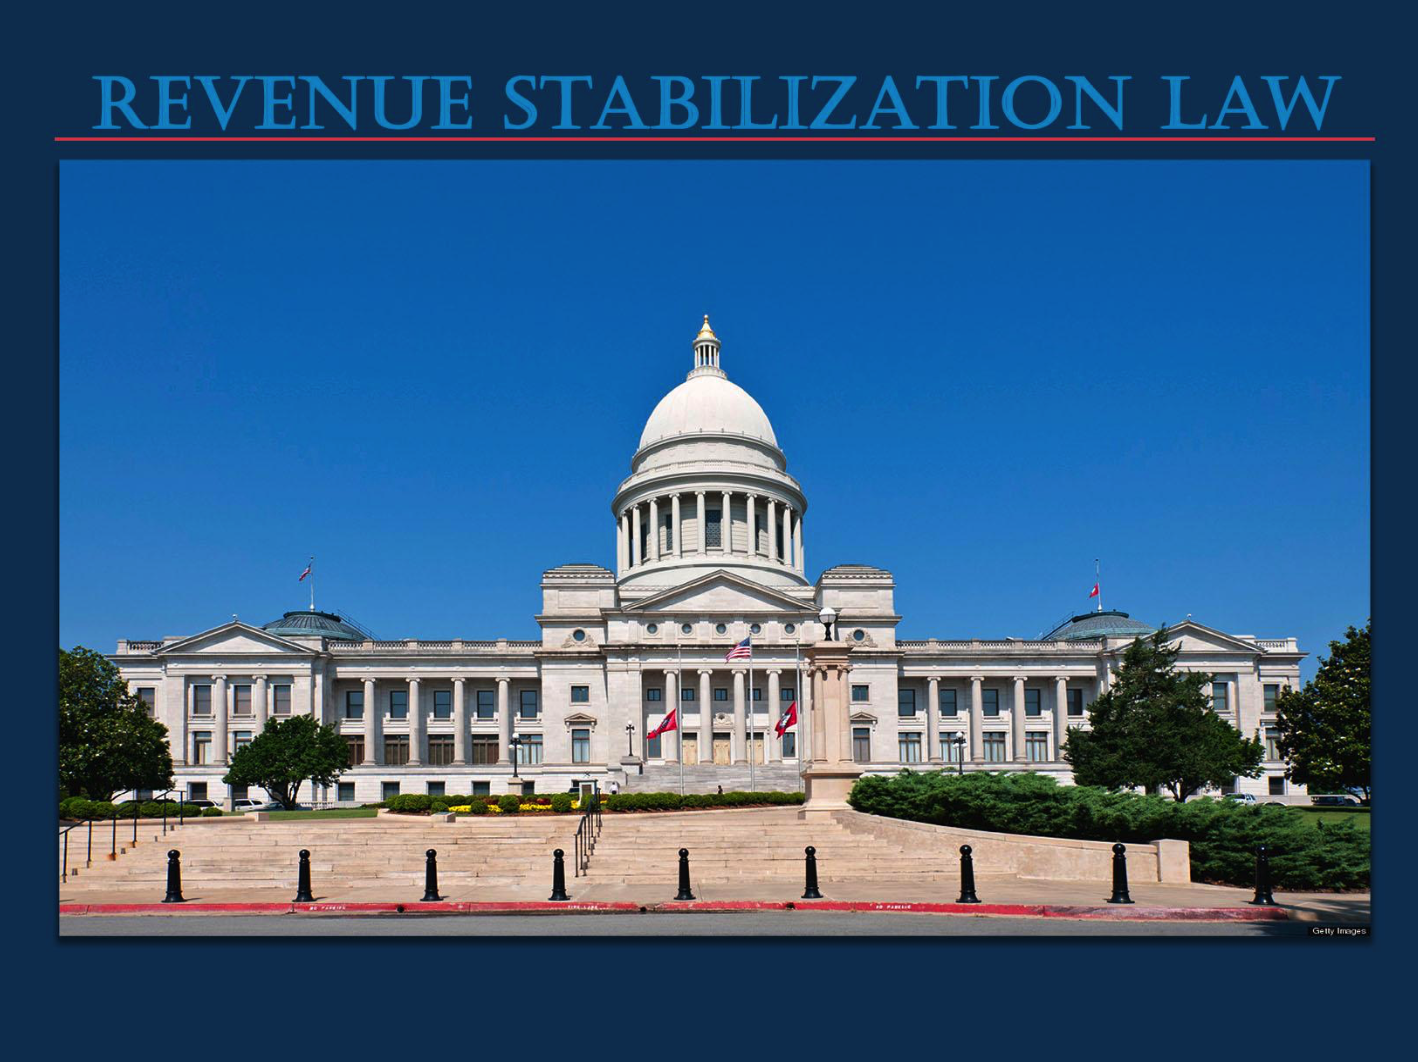 Revenue Stabilization Law - PDF Slides